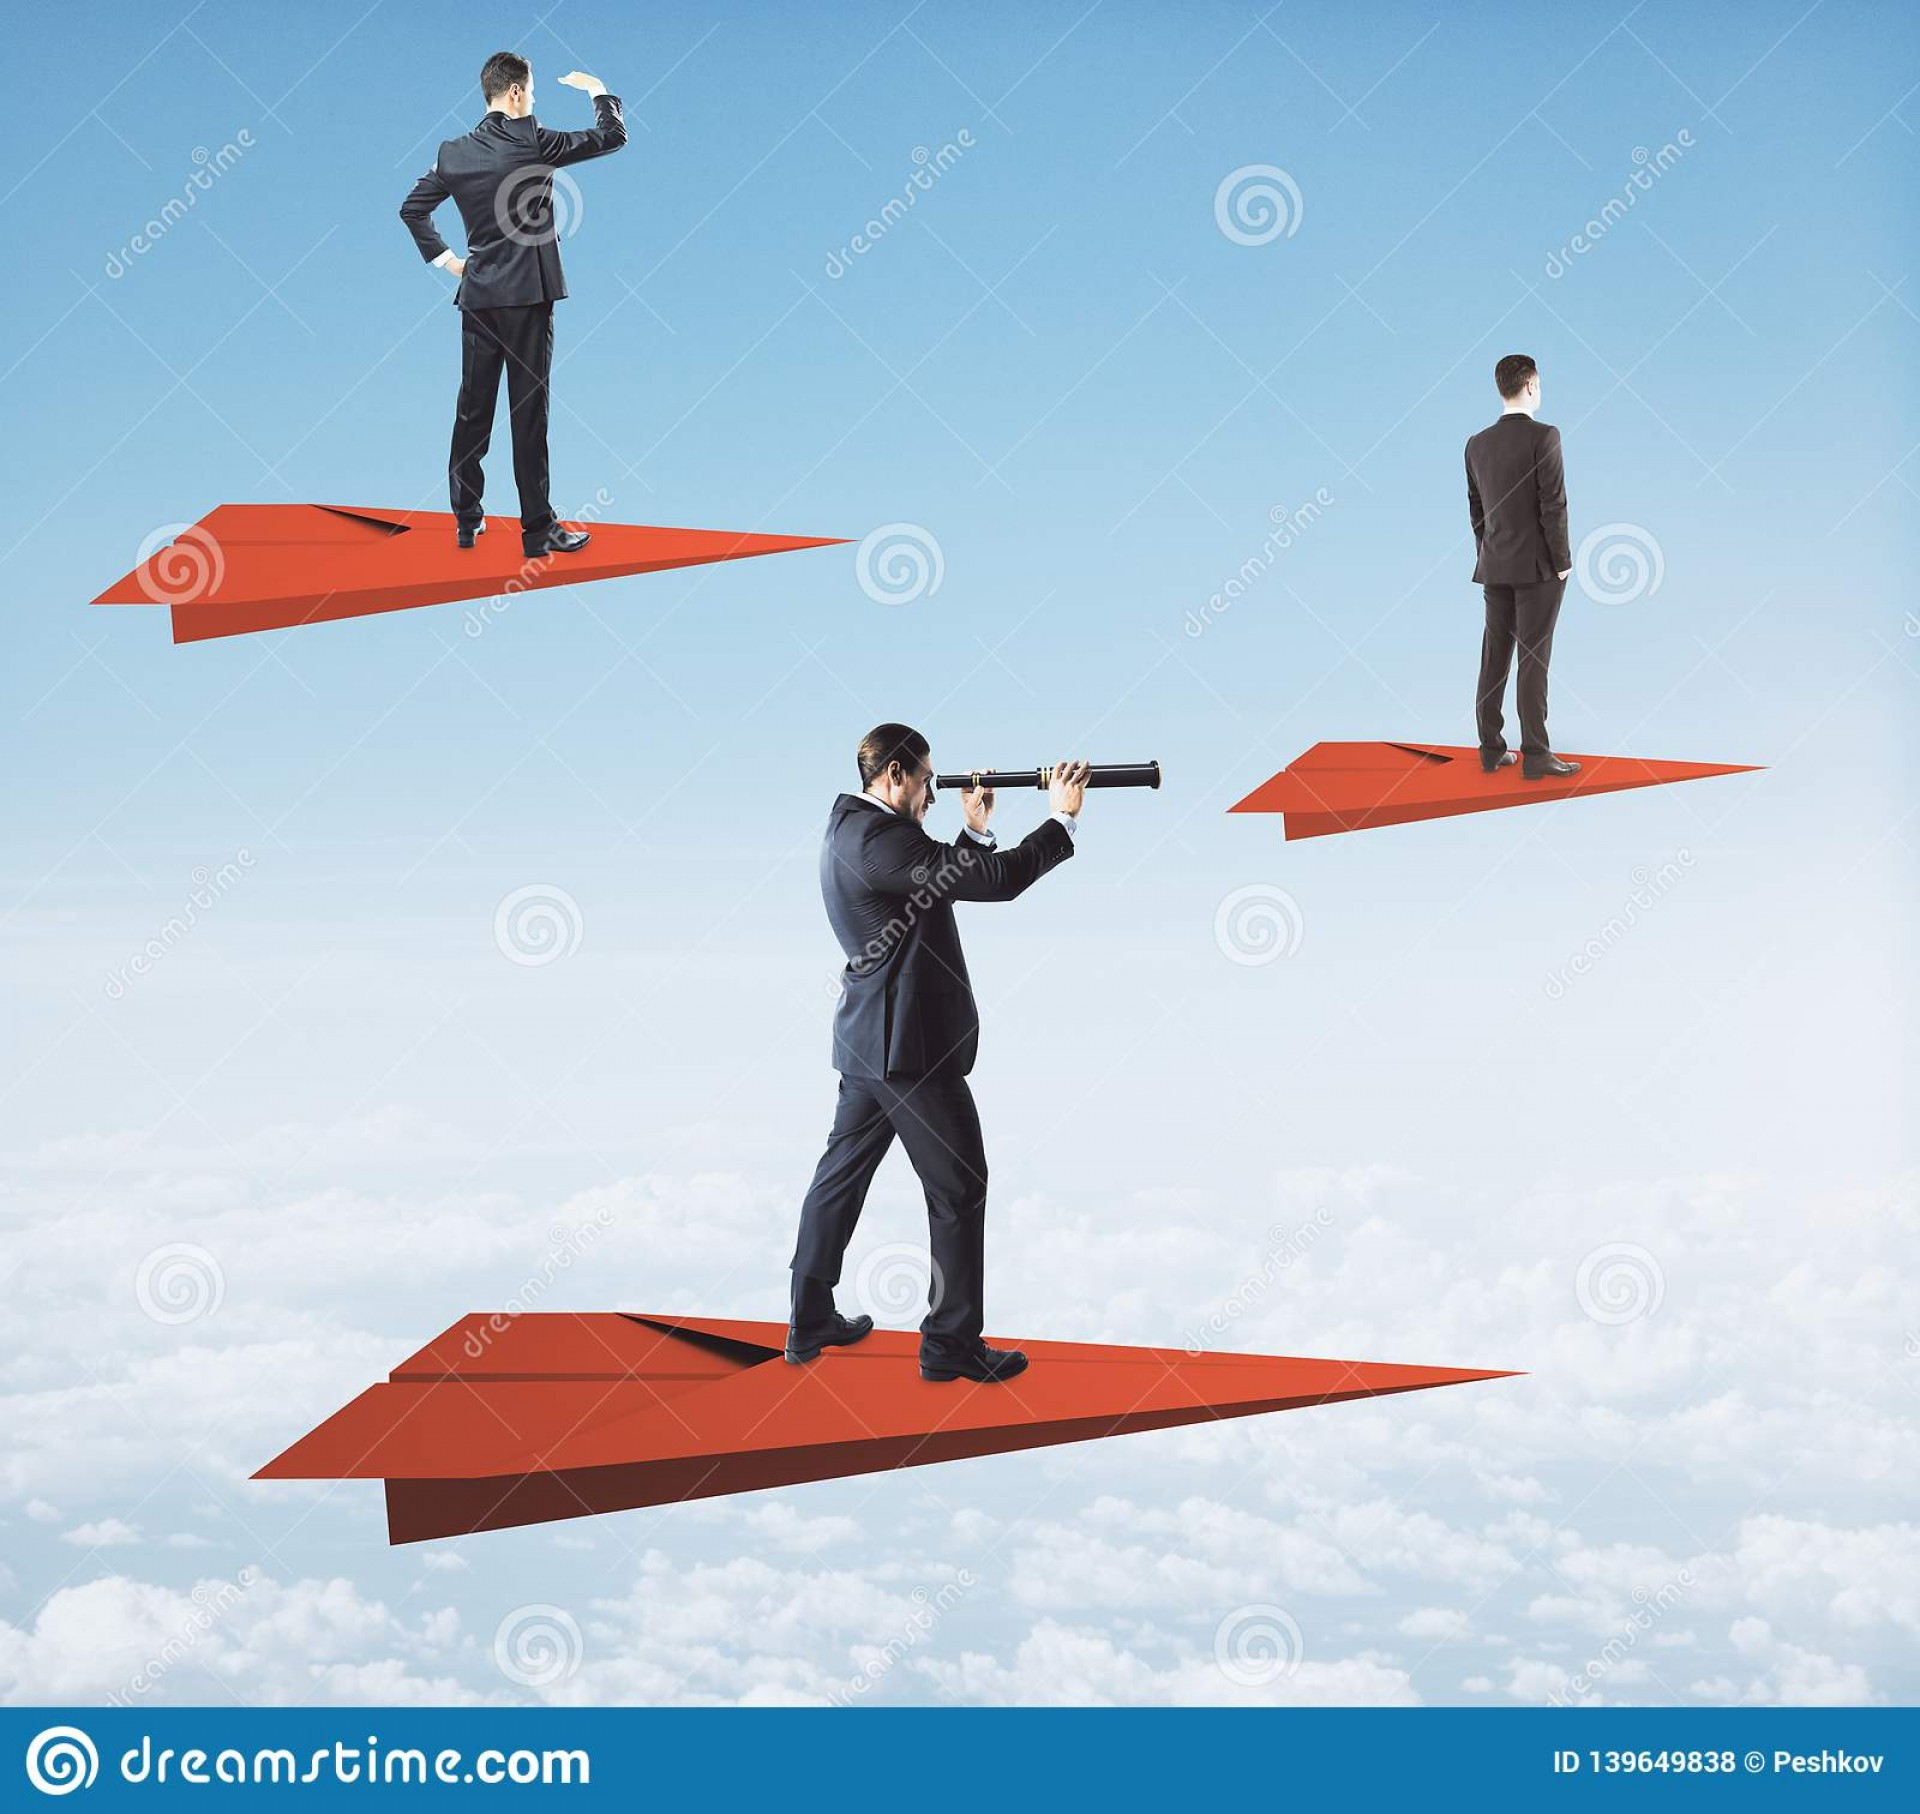 020 Background Research Paper Airplanes Vision Concept Businessmen Red Planes Looking Distance Telescopes Sky Awesome 1920